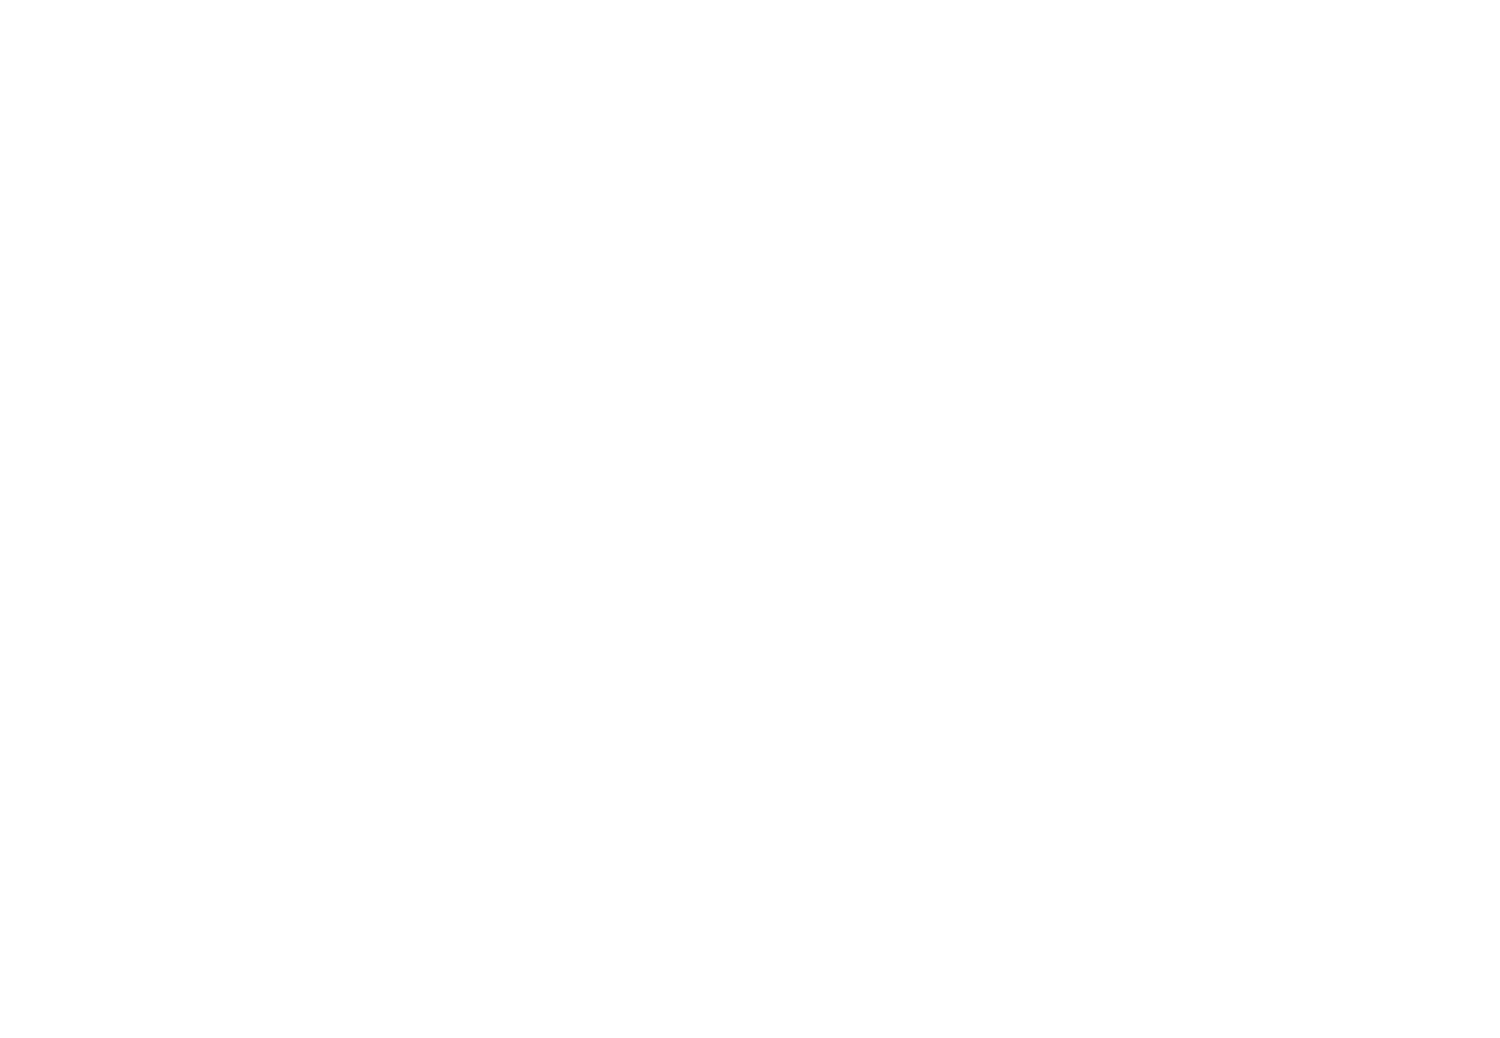 emily vandehey photography